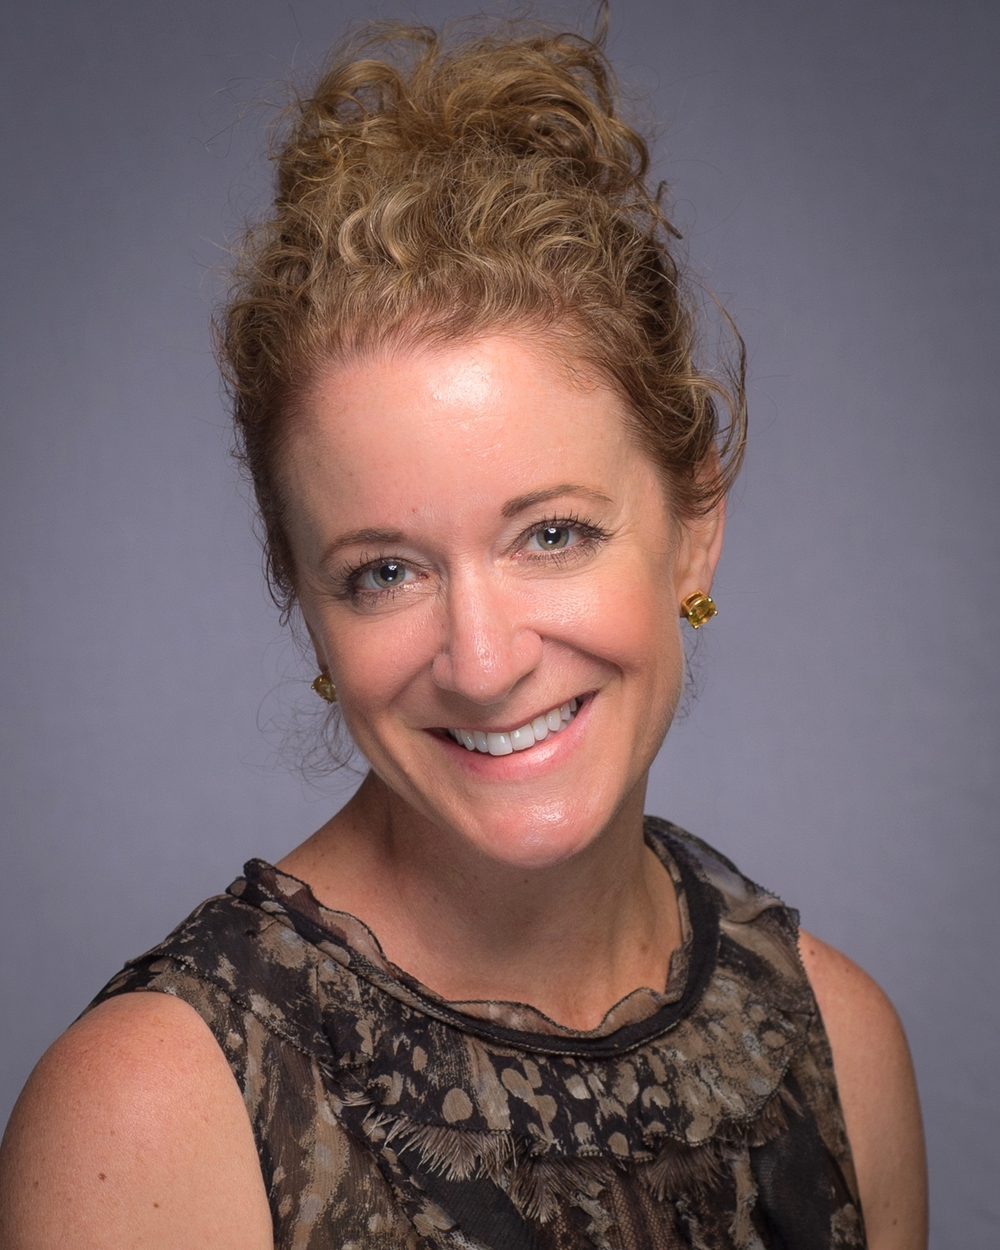 Guttmacher Institute corporate headshot